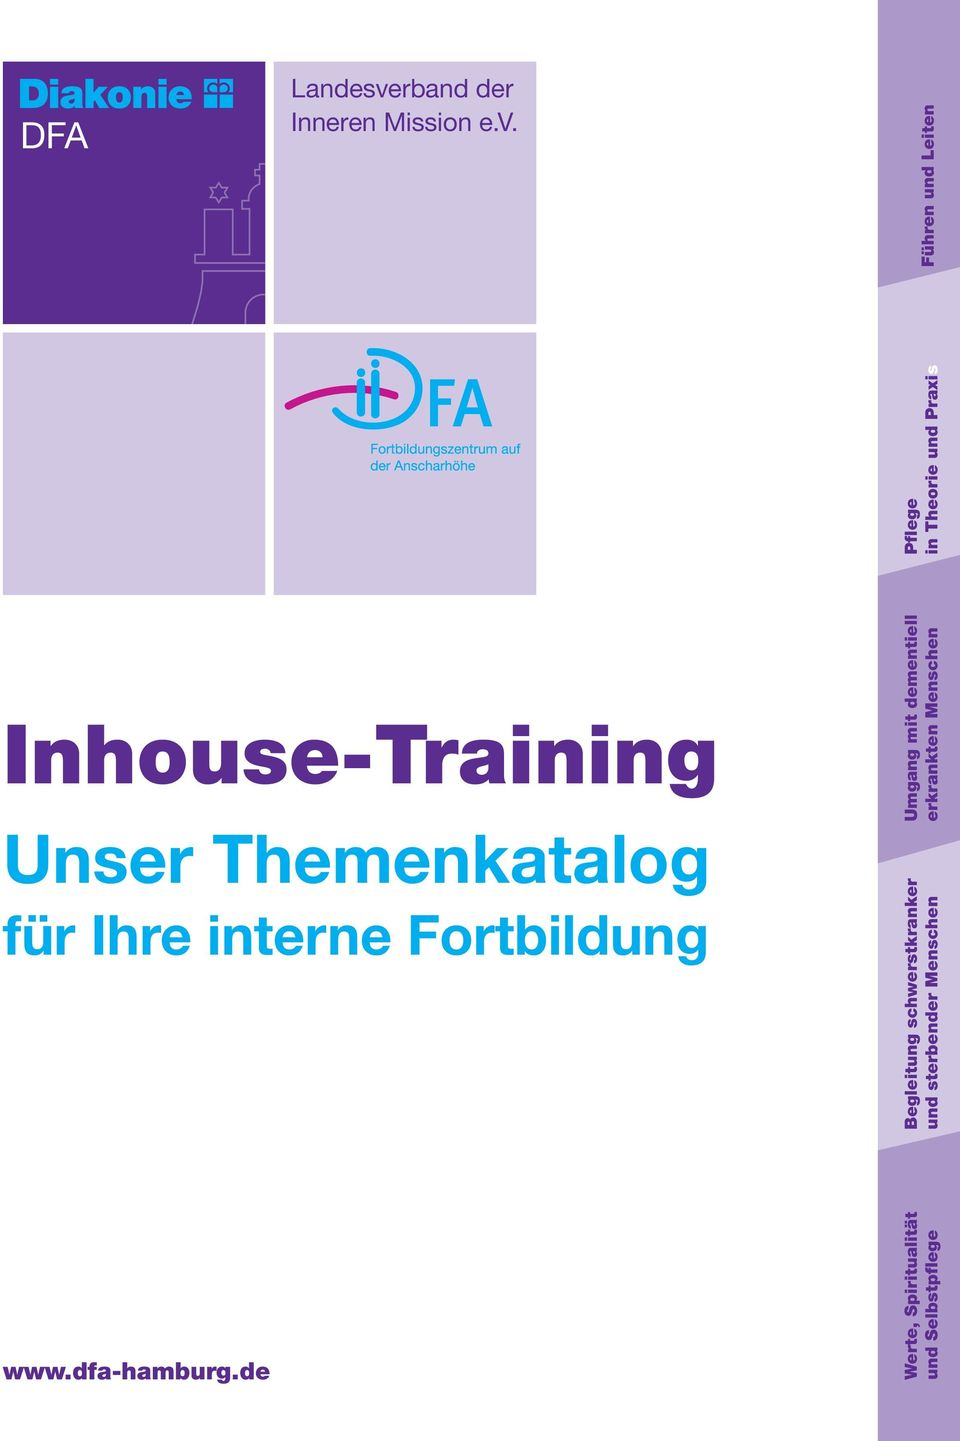 Inhouse-Training Unser Themenkatalog